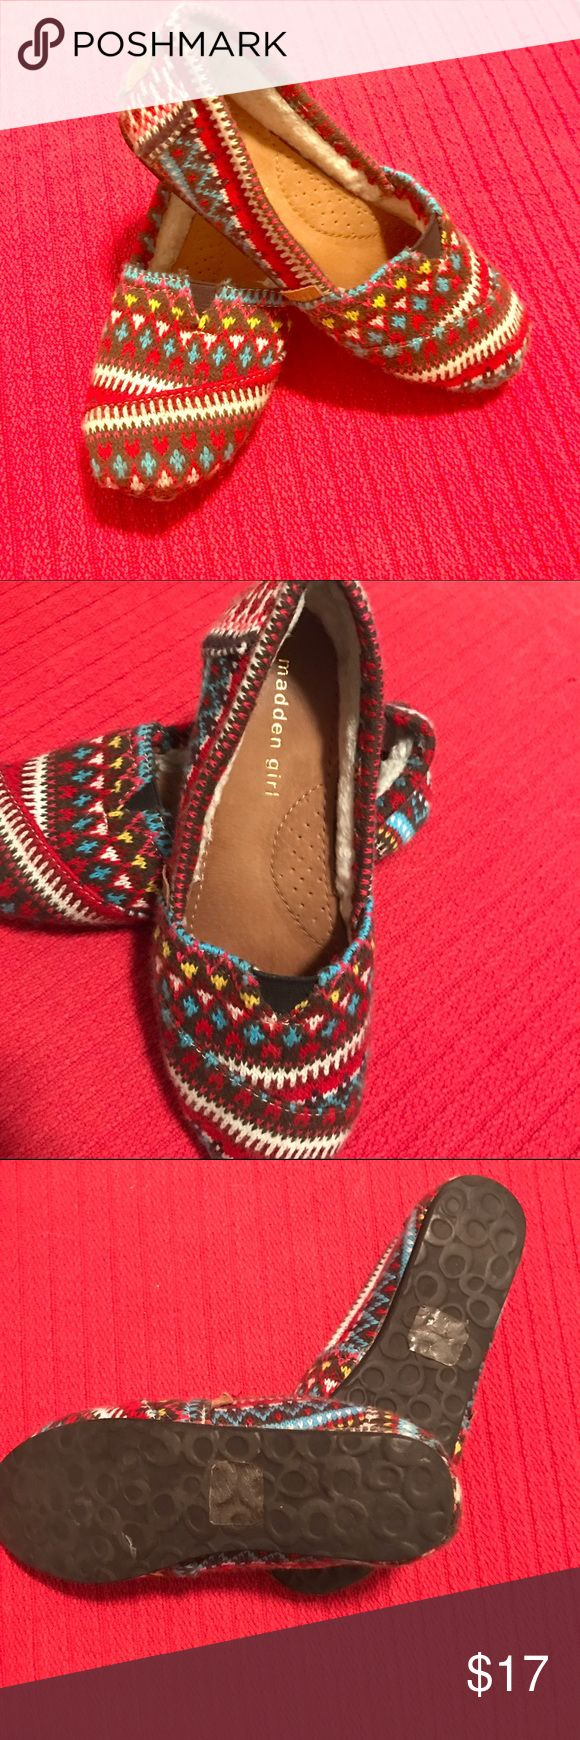 Steve Madden - Madden girl Mocs w shearling lining Size 7- only worn a few times. Made in the same factory that makes Toms. Exact same cut! Fits 7 or 7.5 Steve Madden Shoes Moccasins